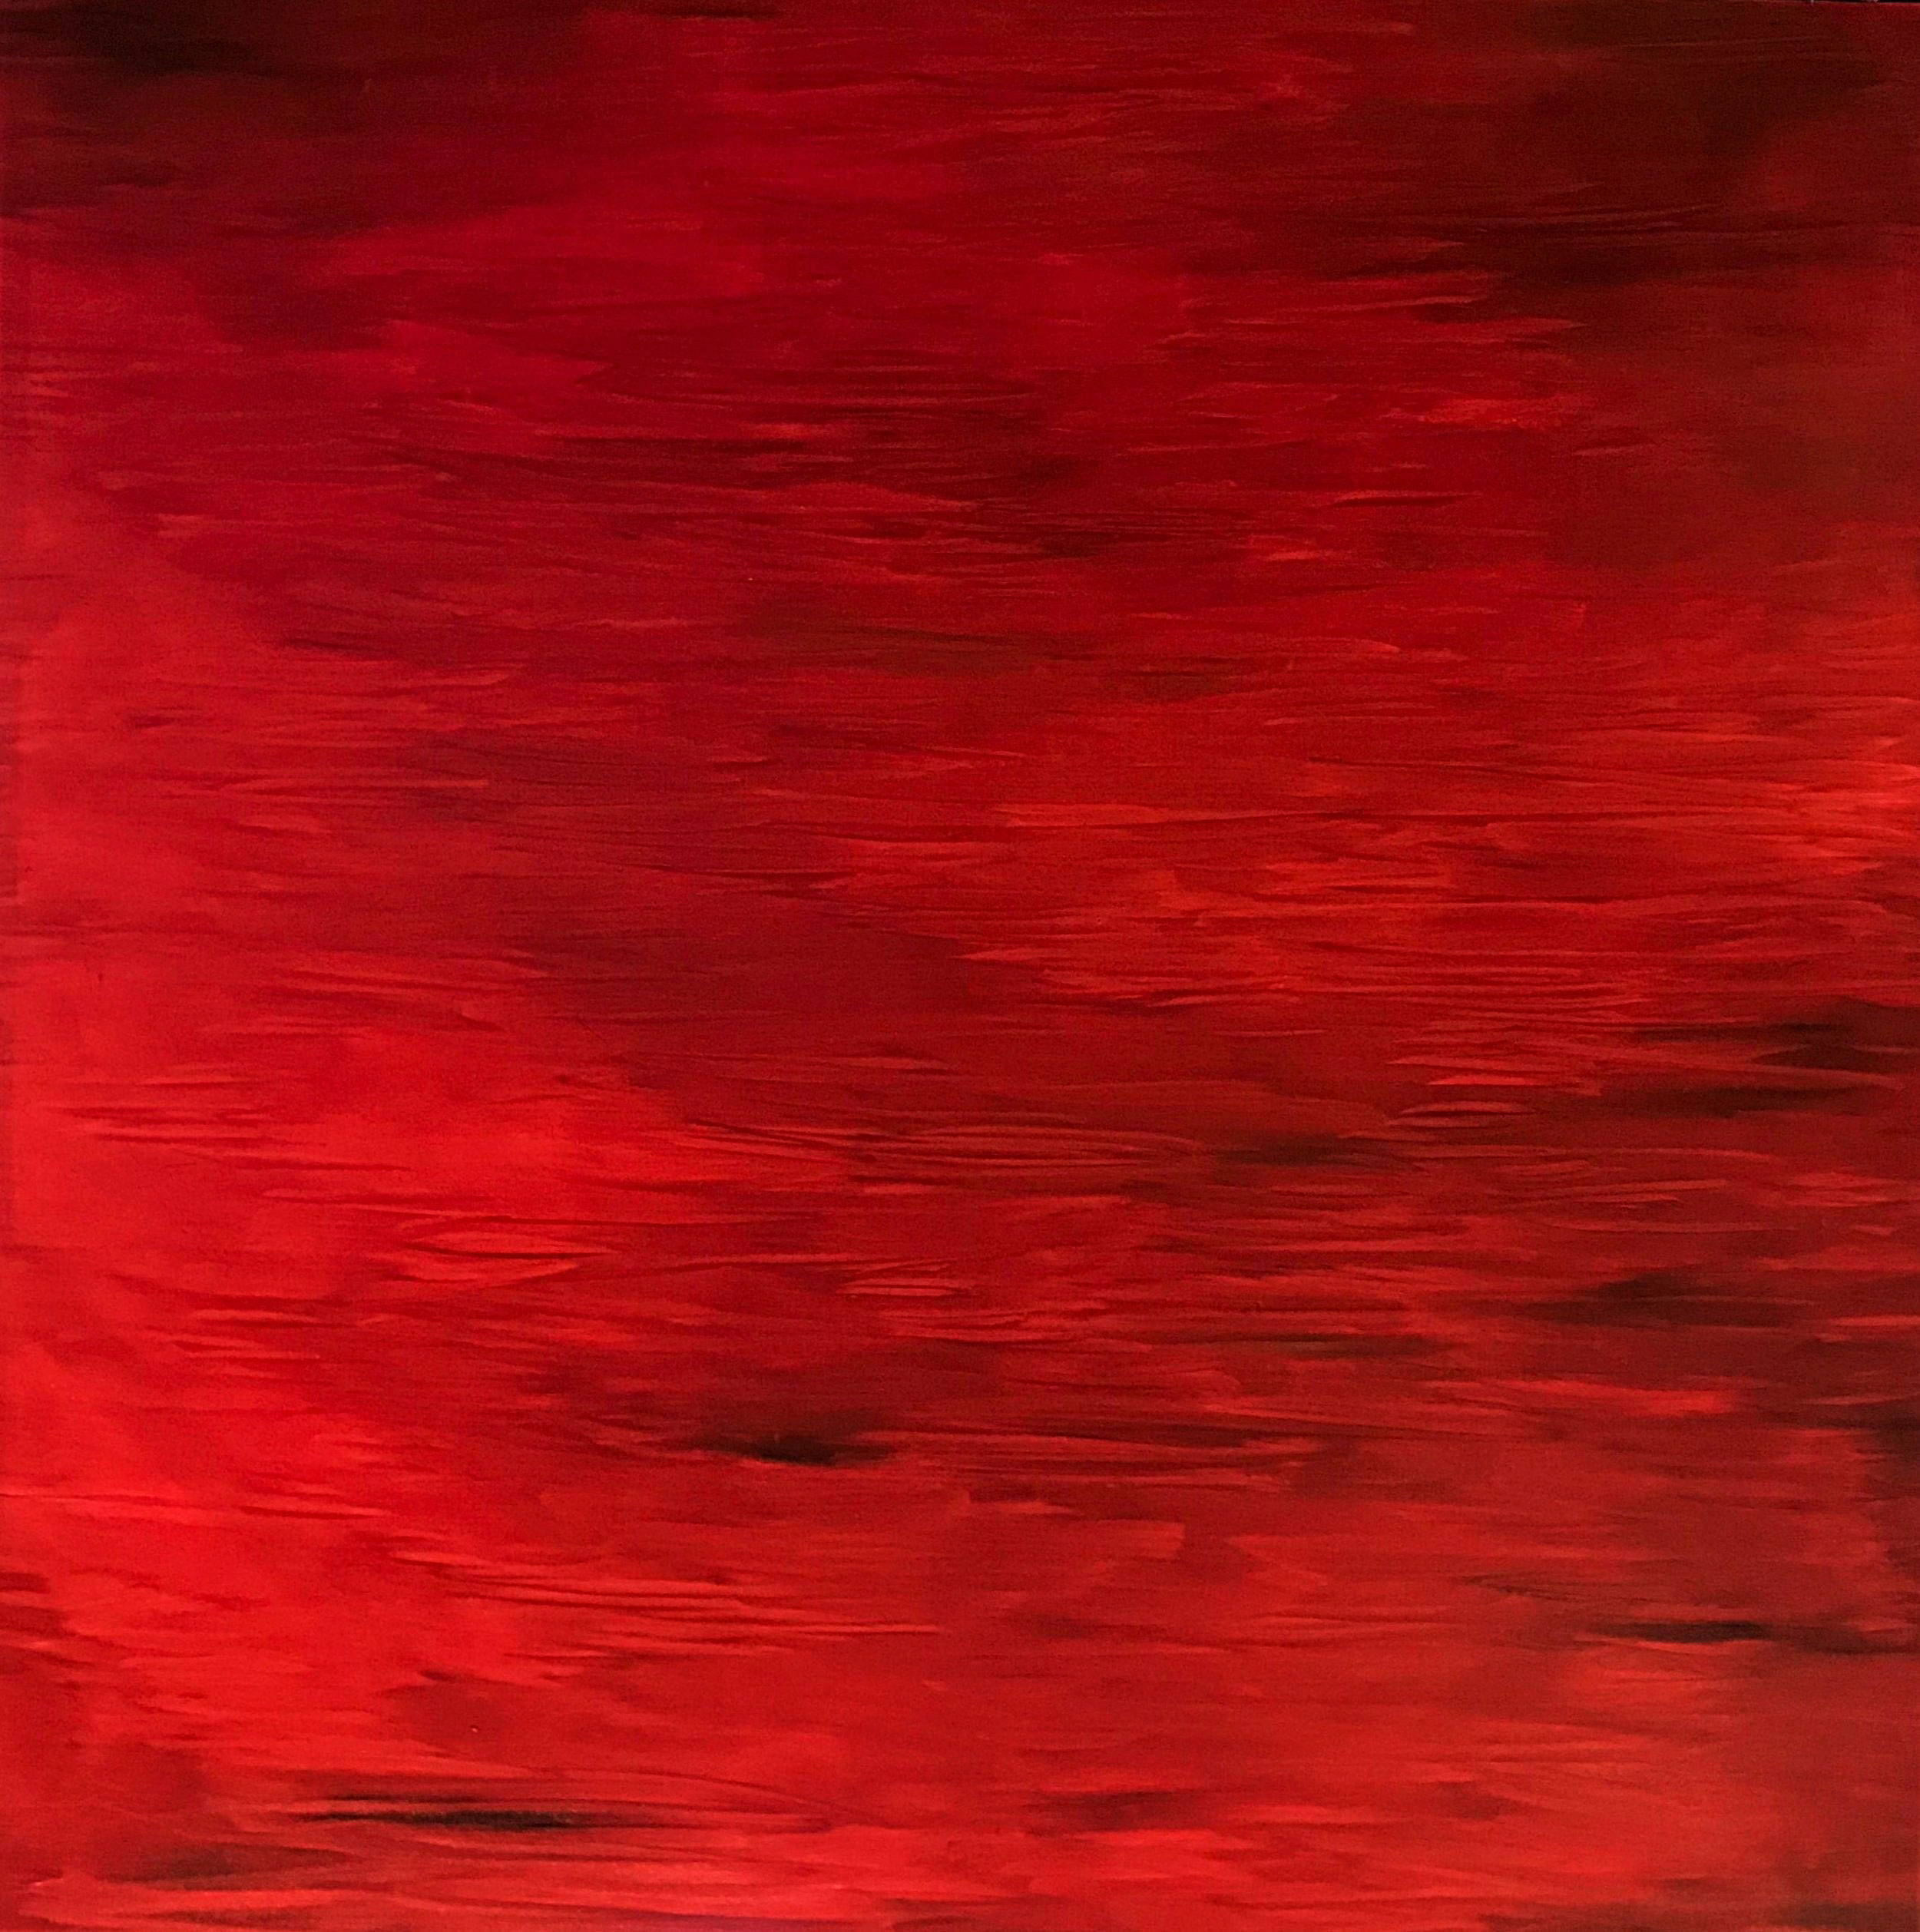 """Red I   2009  48"""" x 48"""" (121.9 x 121.9 cm)  oil on canvas   PRIVATE COLLECTION  🔴"""